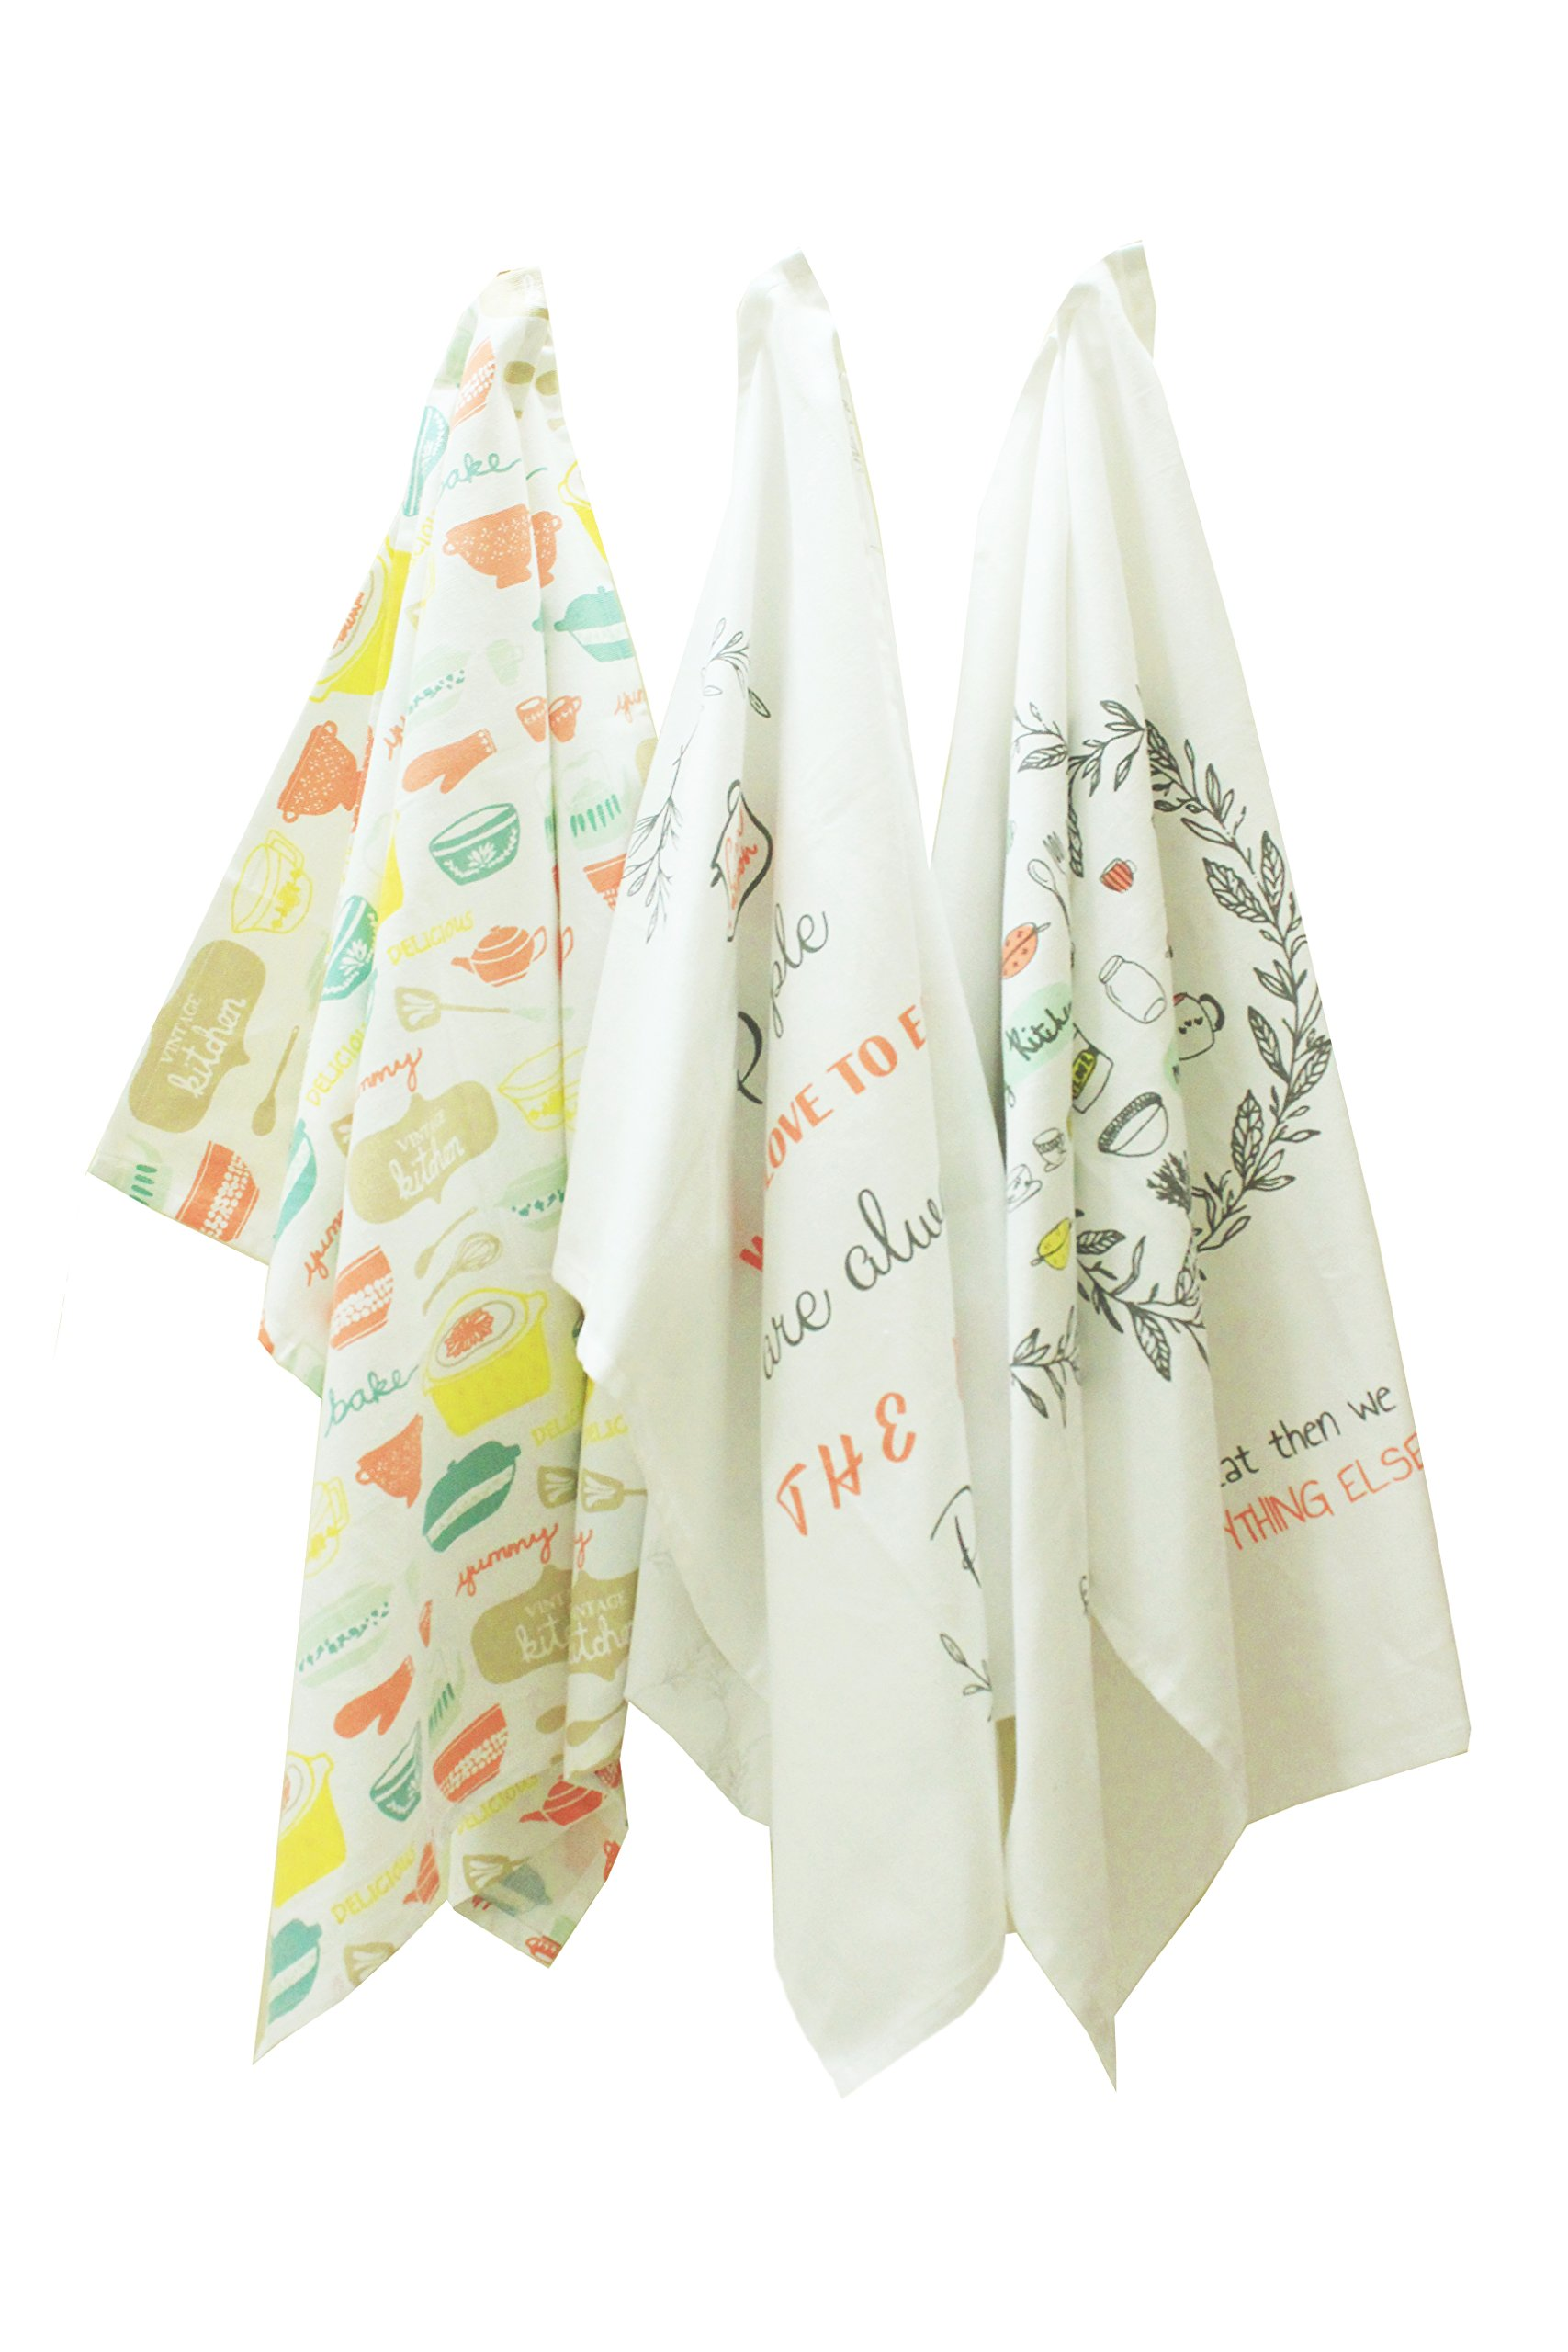 Happy Home Linens Printed Kitchen Towels 'Food Love' 100% Cotton, Set Of 6, 20 x 27.50 Inch, Perfect Home And Kitchen Gift